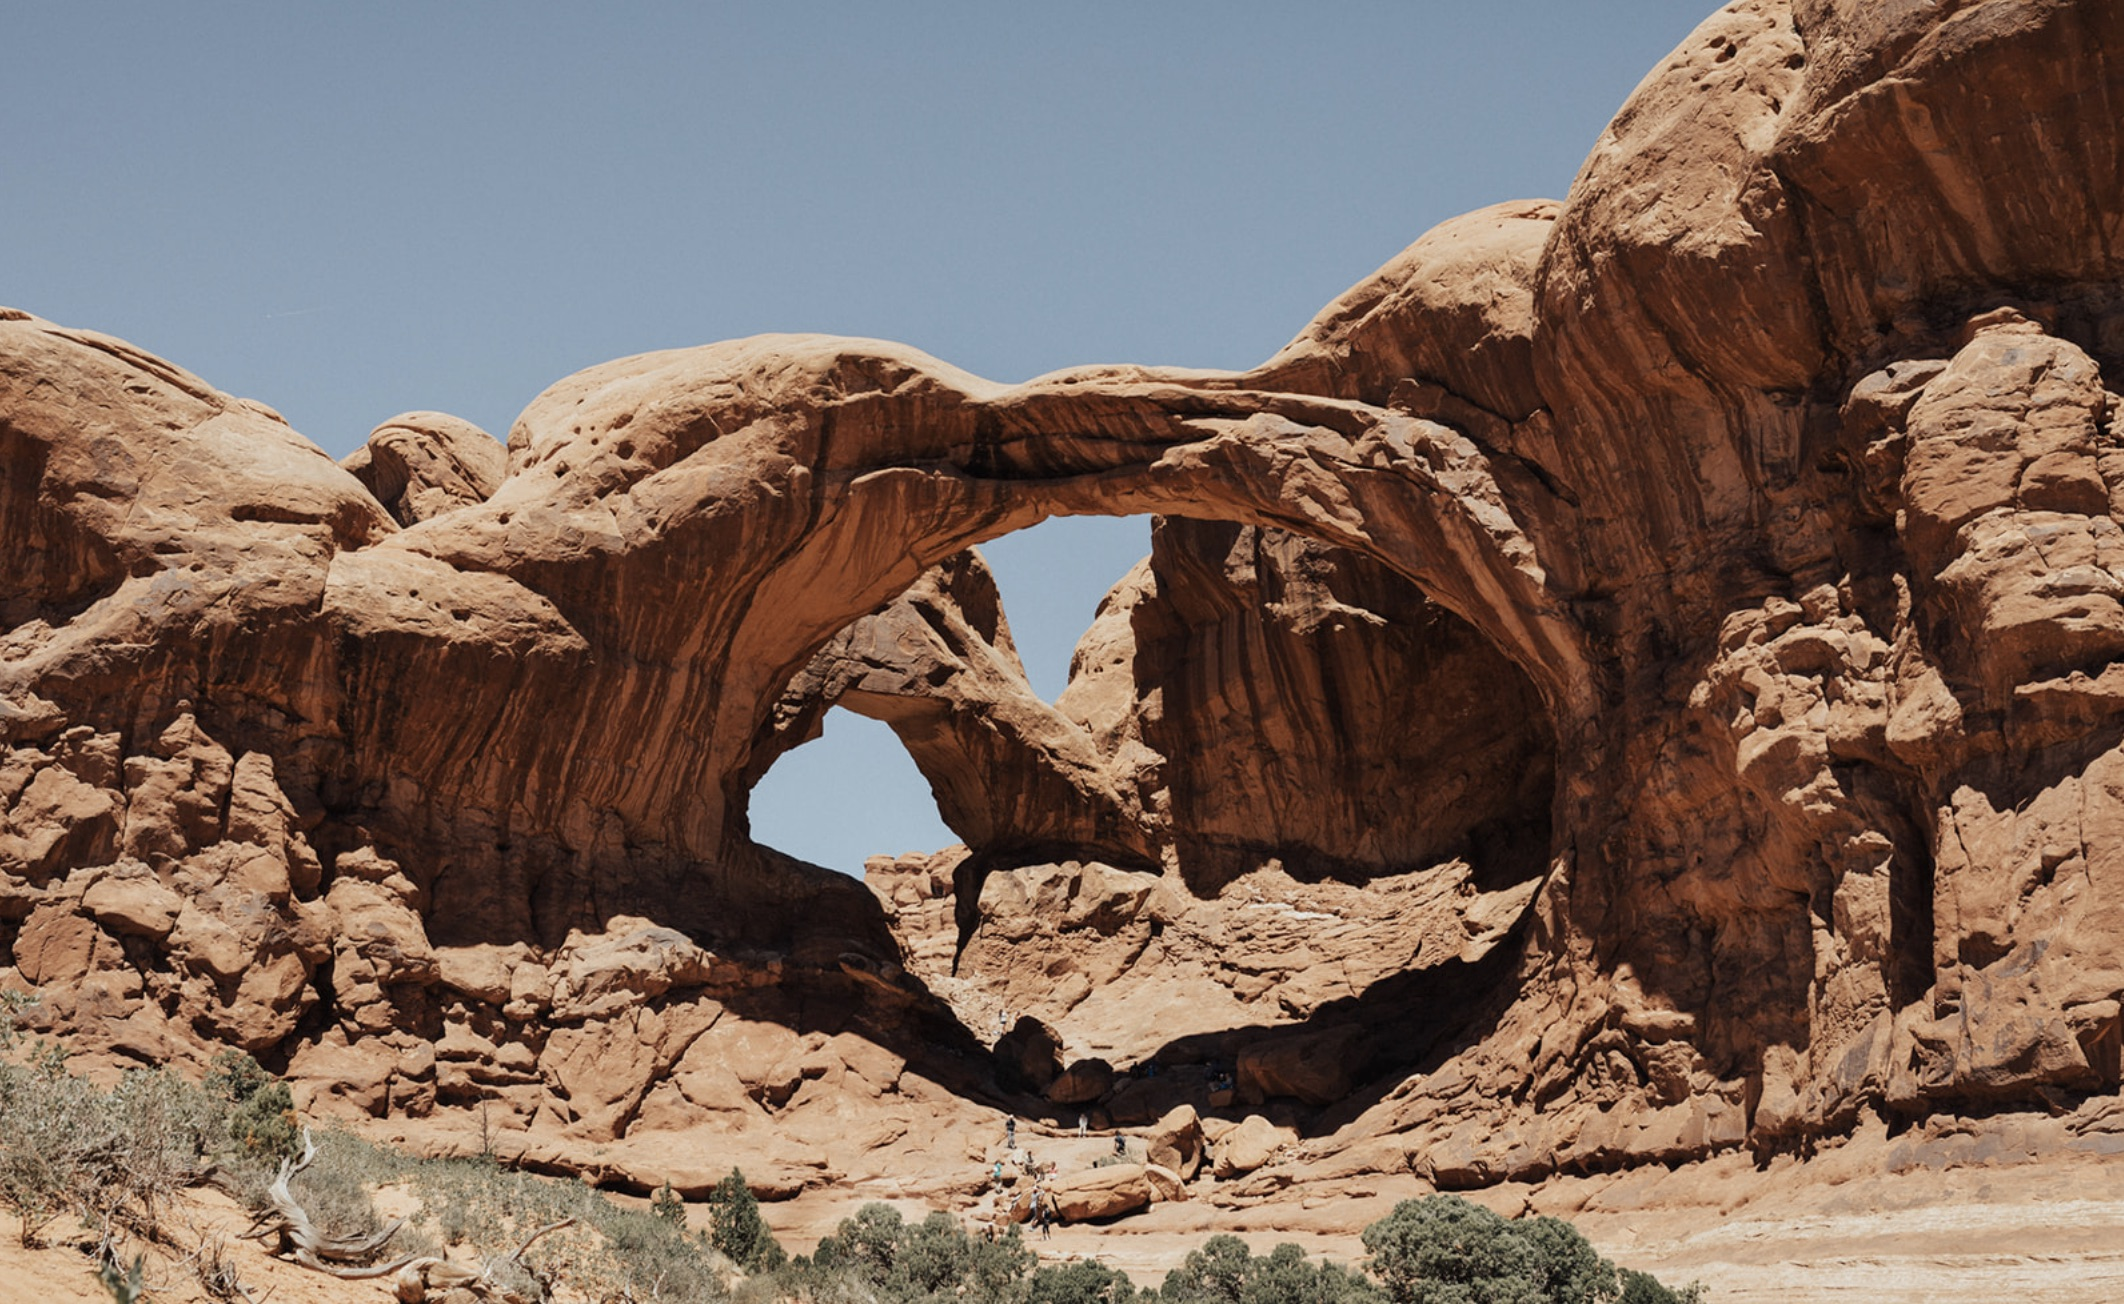 An image of the Arches in Moab, Utah photographed by Alexa Ann, Seattle elopement photographer.